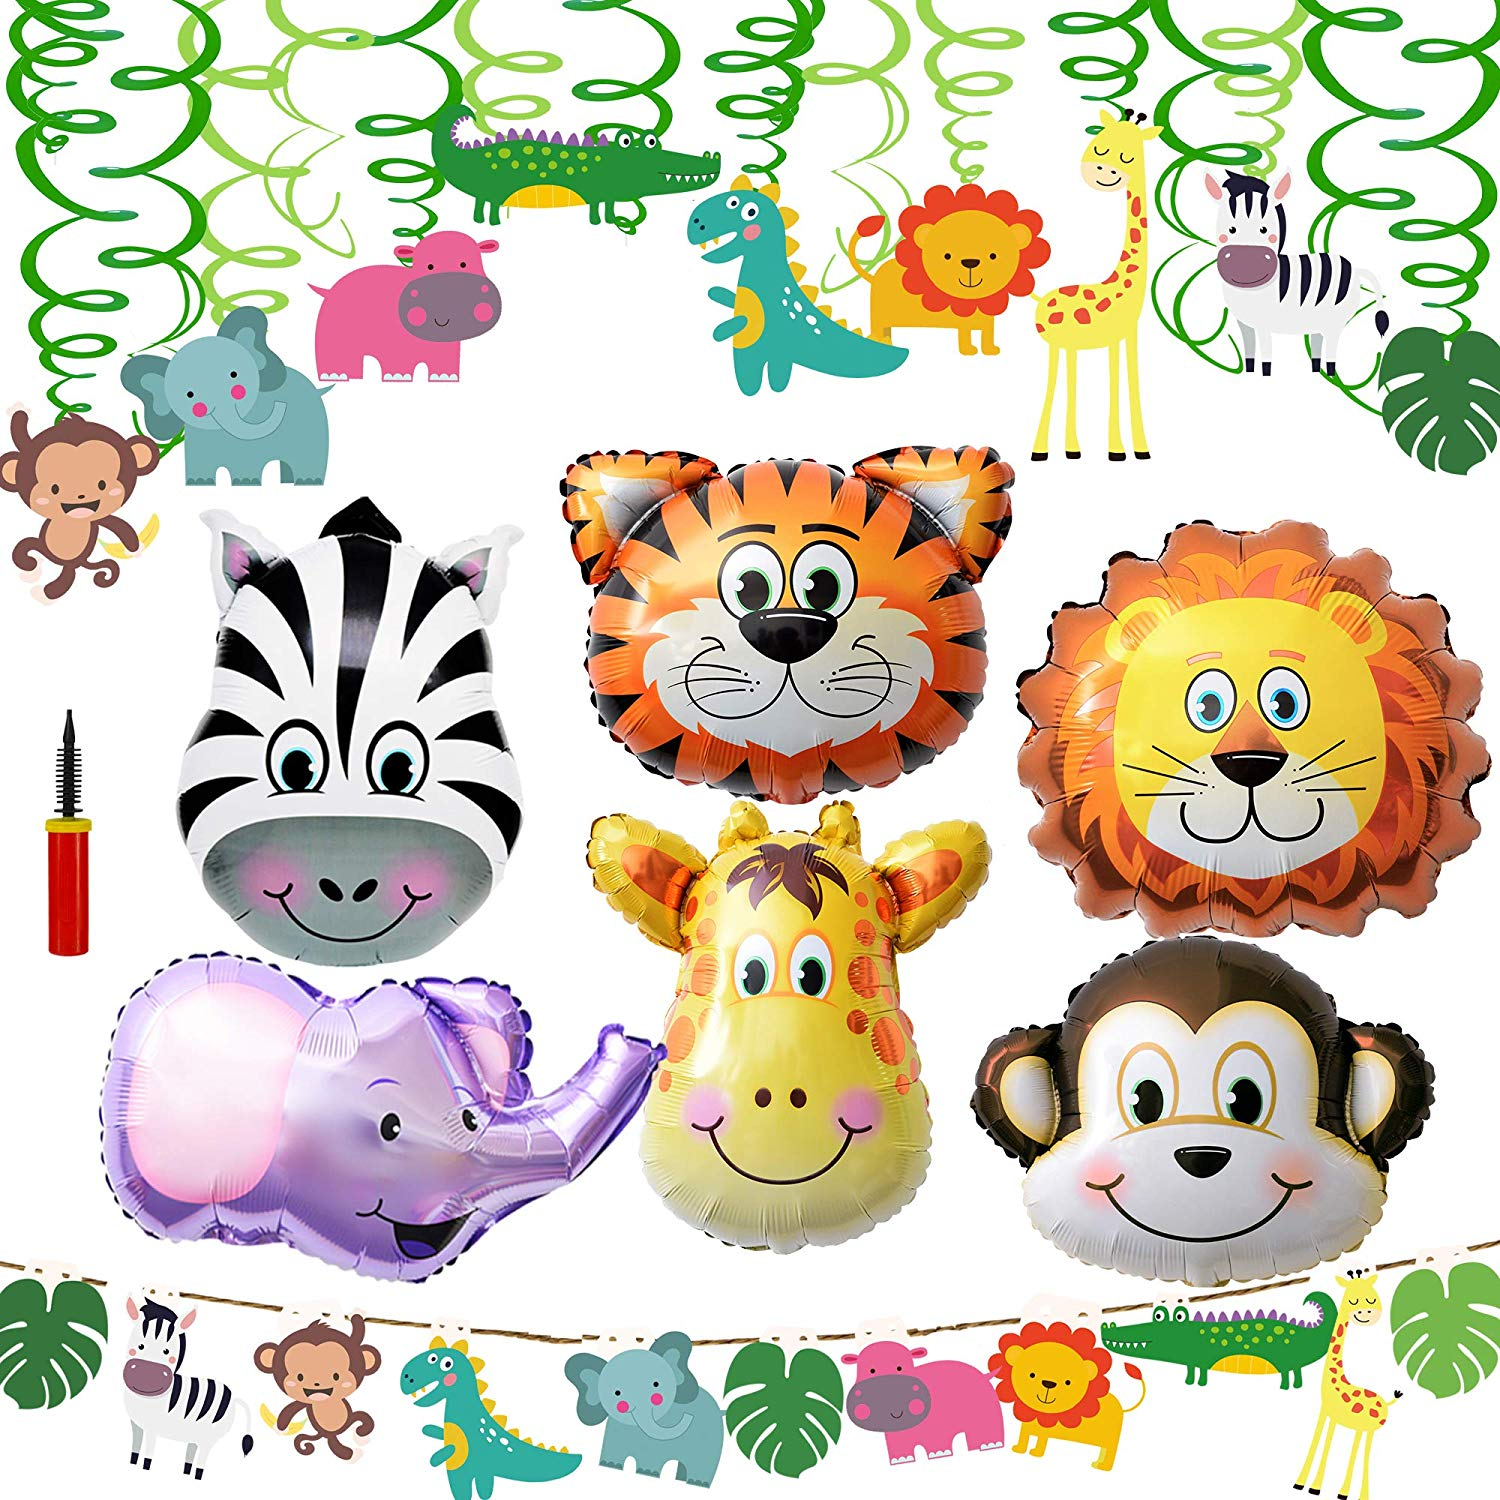 Supla VBS Safari Jungle Animals Hanging Decorations Green Safari Party  Forest Animal Theme Supplies for Baby Shower Kids 1st Birthday Nursery  School.